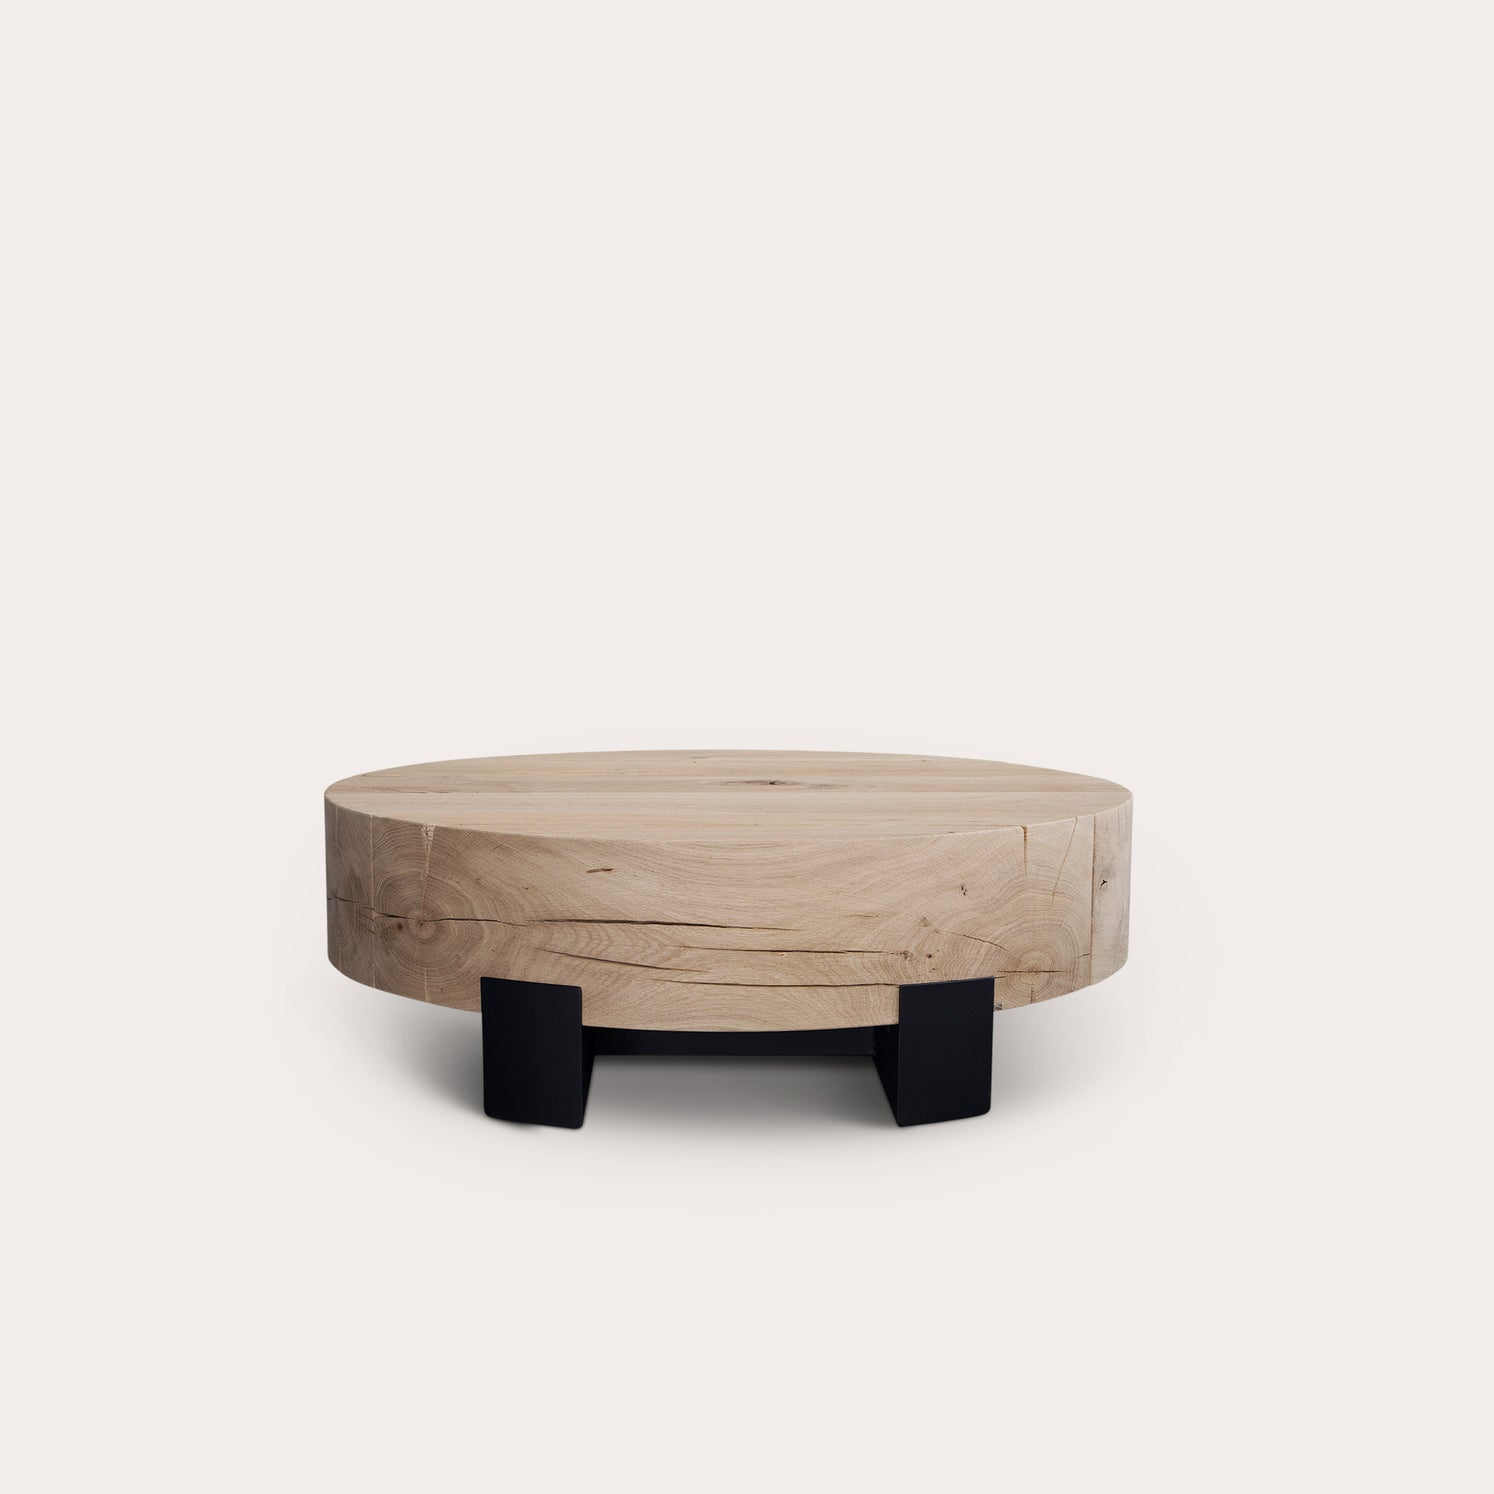 Beam Round Tables Marlieke Van Rossum Designer Furniture Sku: 416-230-10329